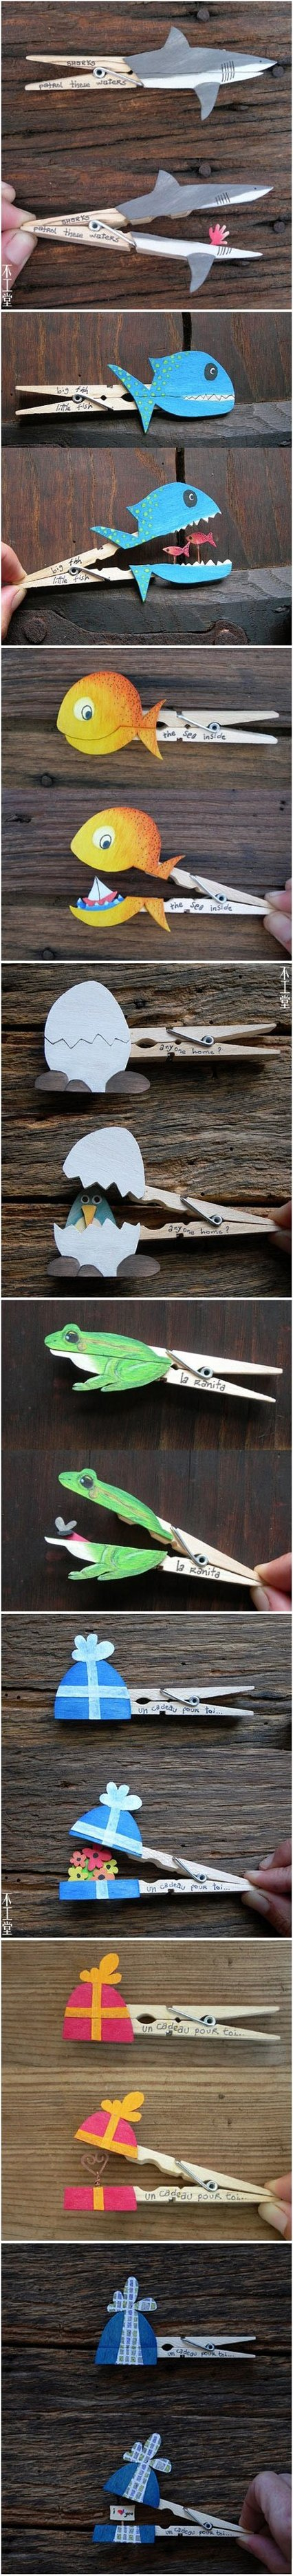 Fun With Clothespins